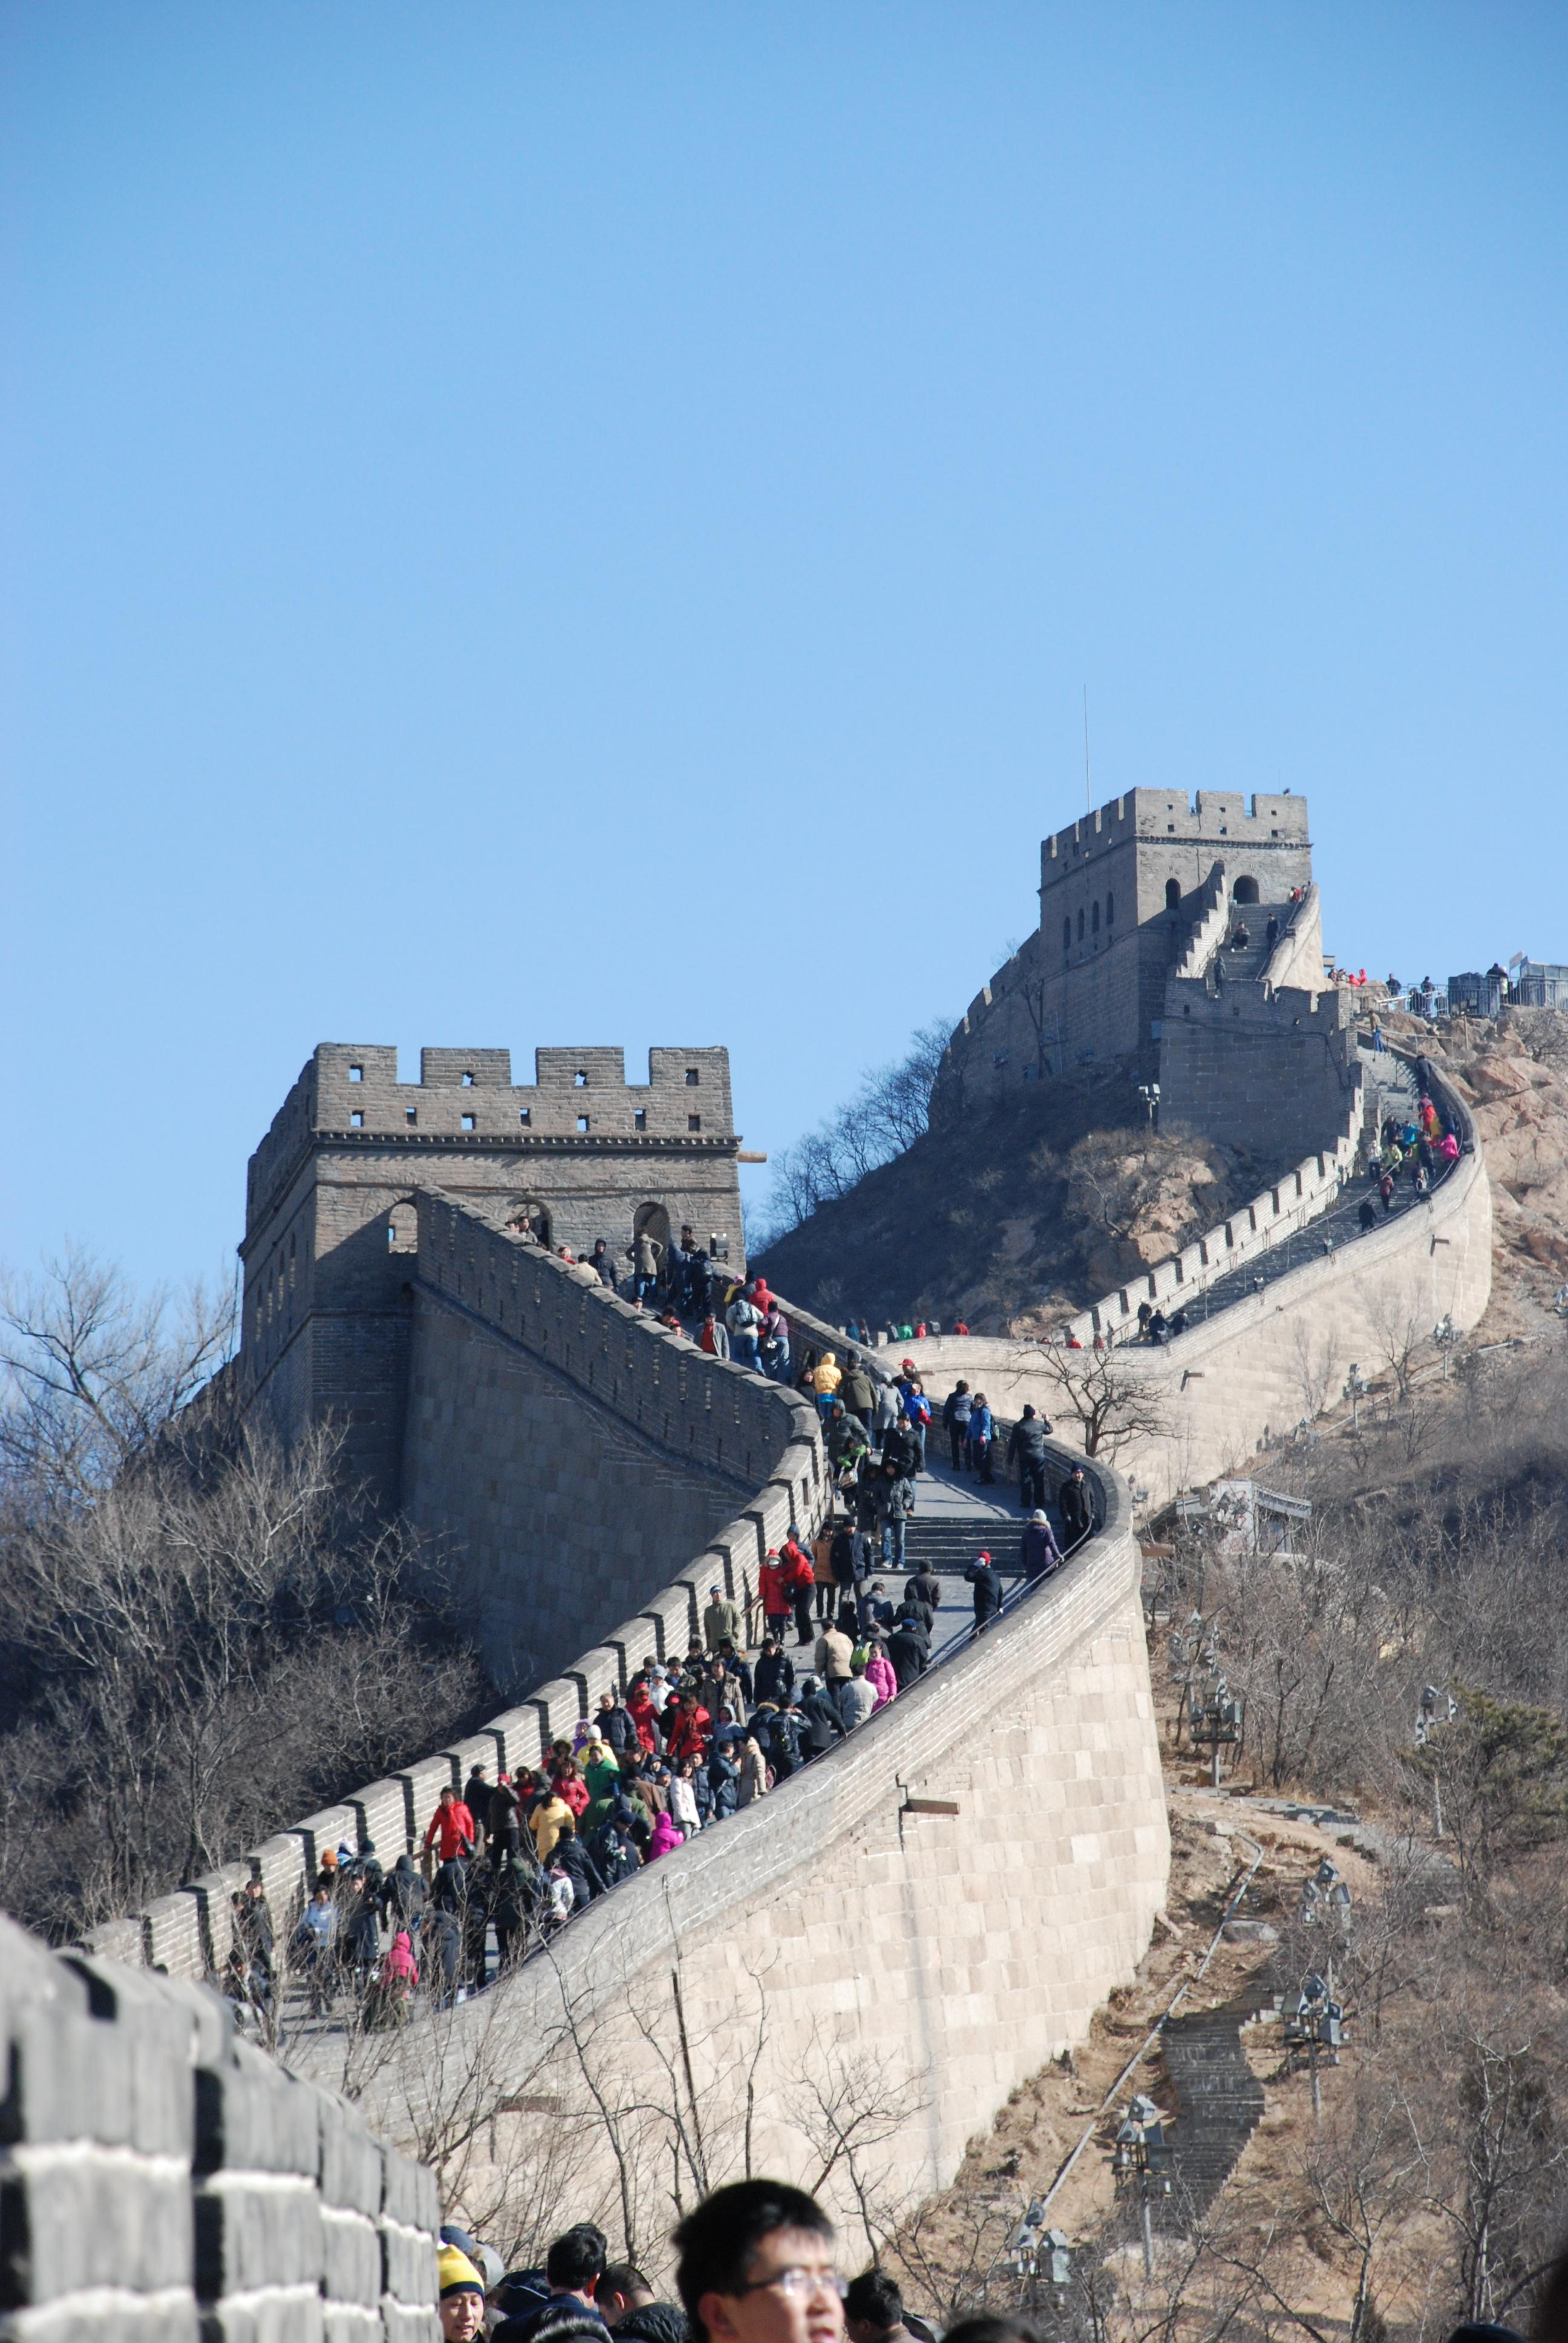 The Great Wall of China - look at all the people!